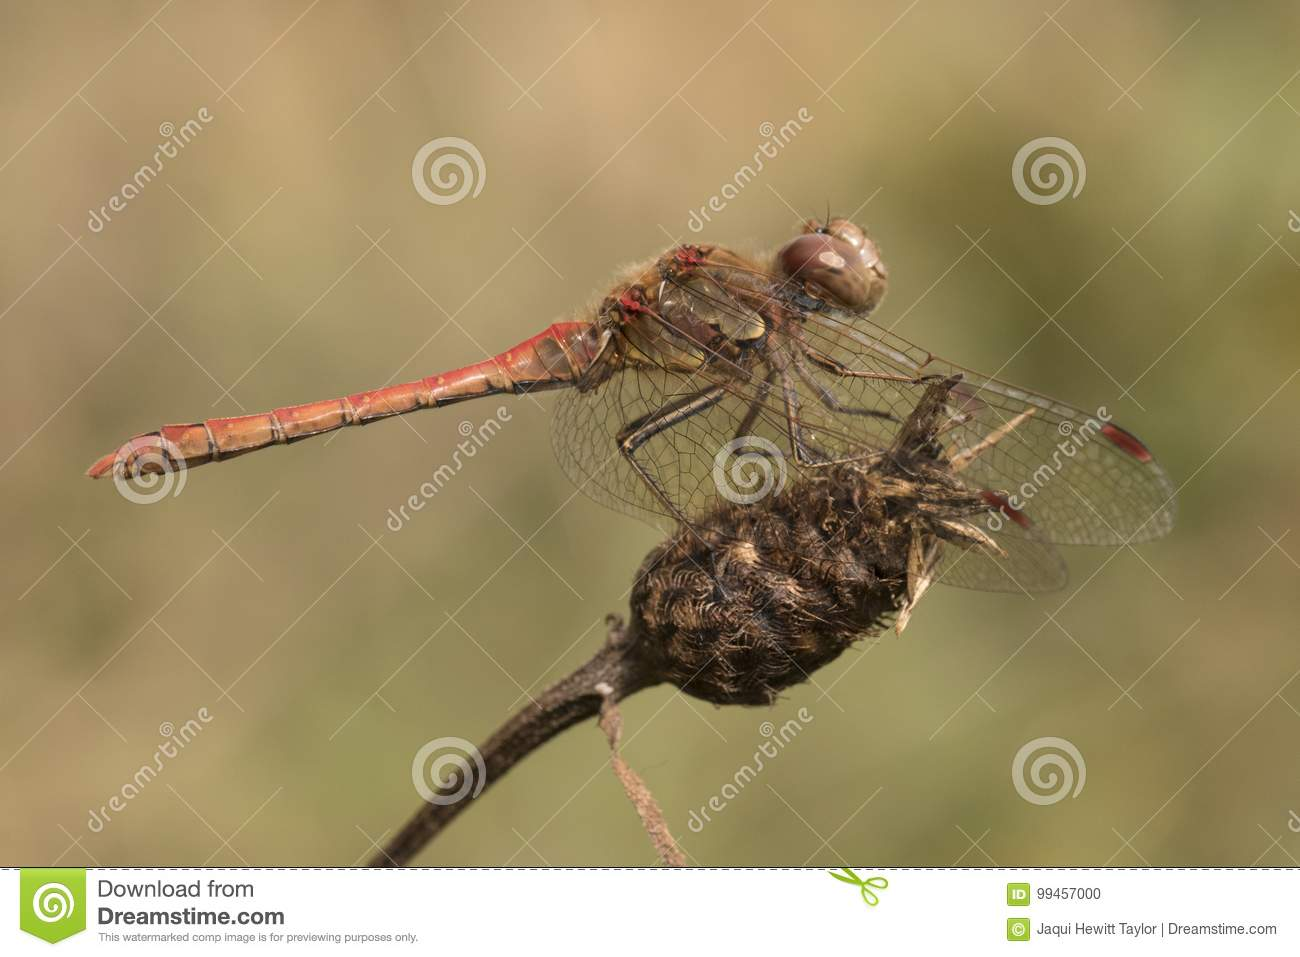 Dragonfly on seed head